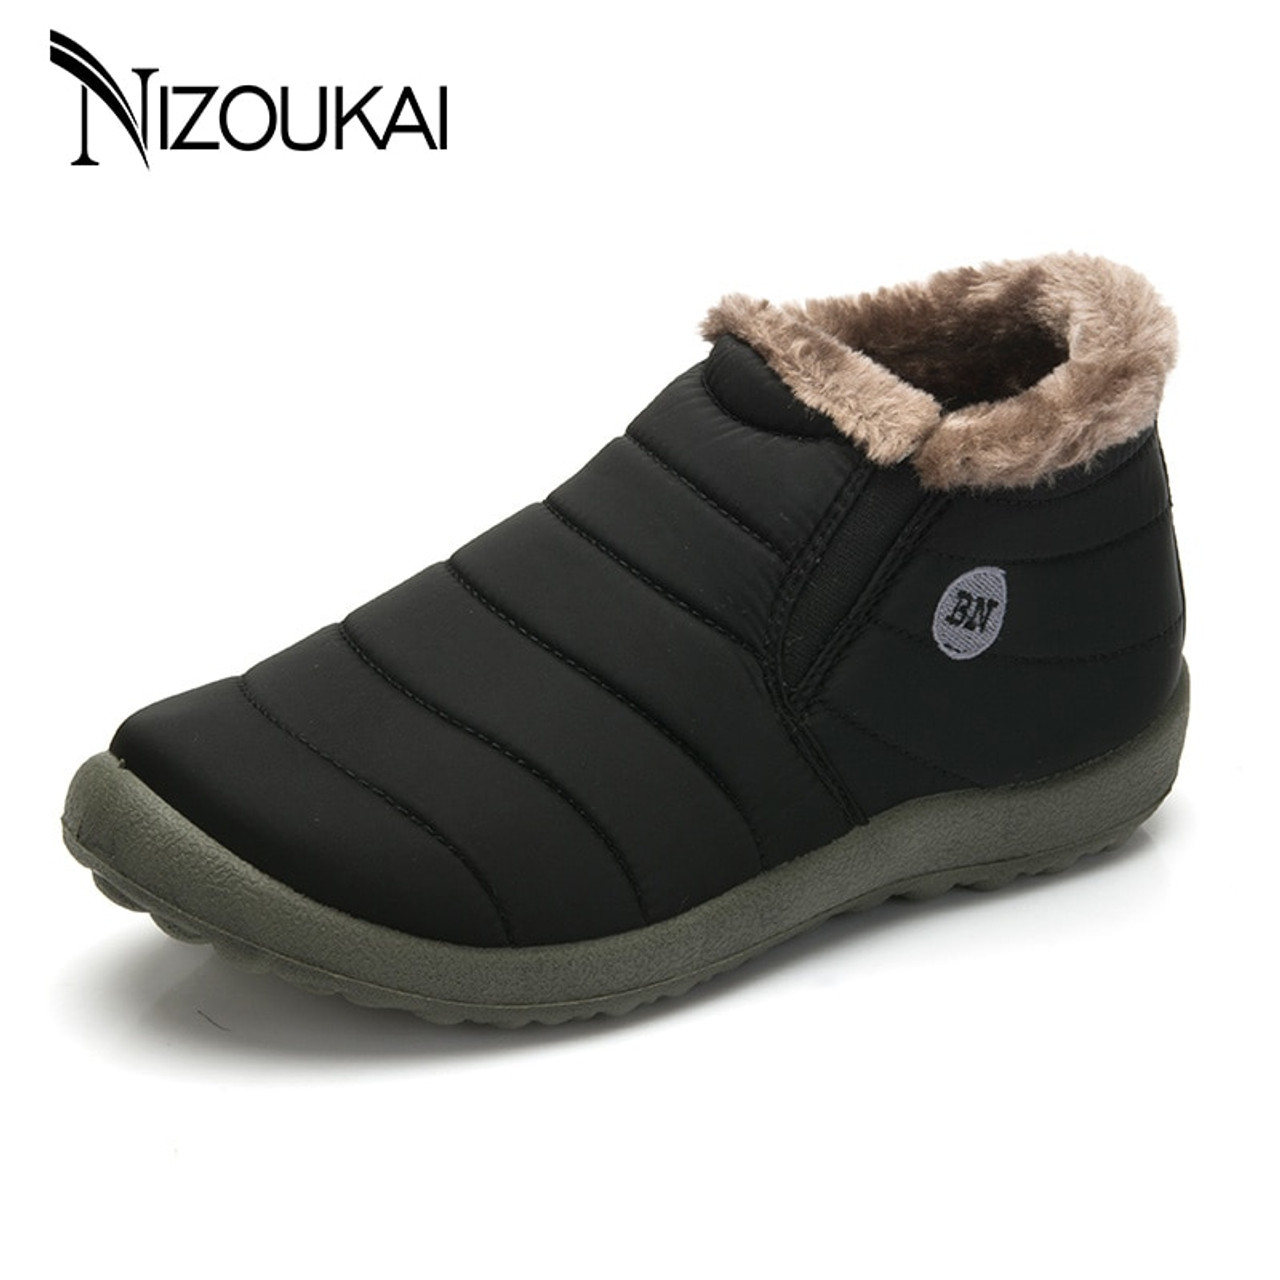 4aa561c5a Men Winter Shoes snow boots for men waterproof Warming Fabric Slip-on Ankle  Boots for Male Winter Outdoor Shoes Plus Size 35-48